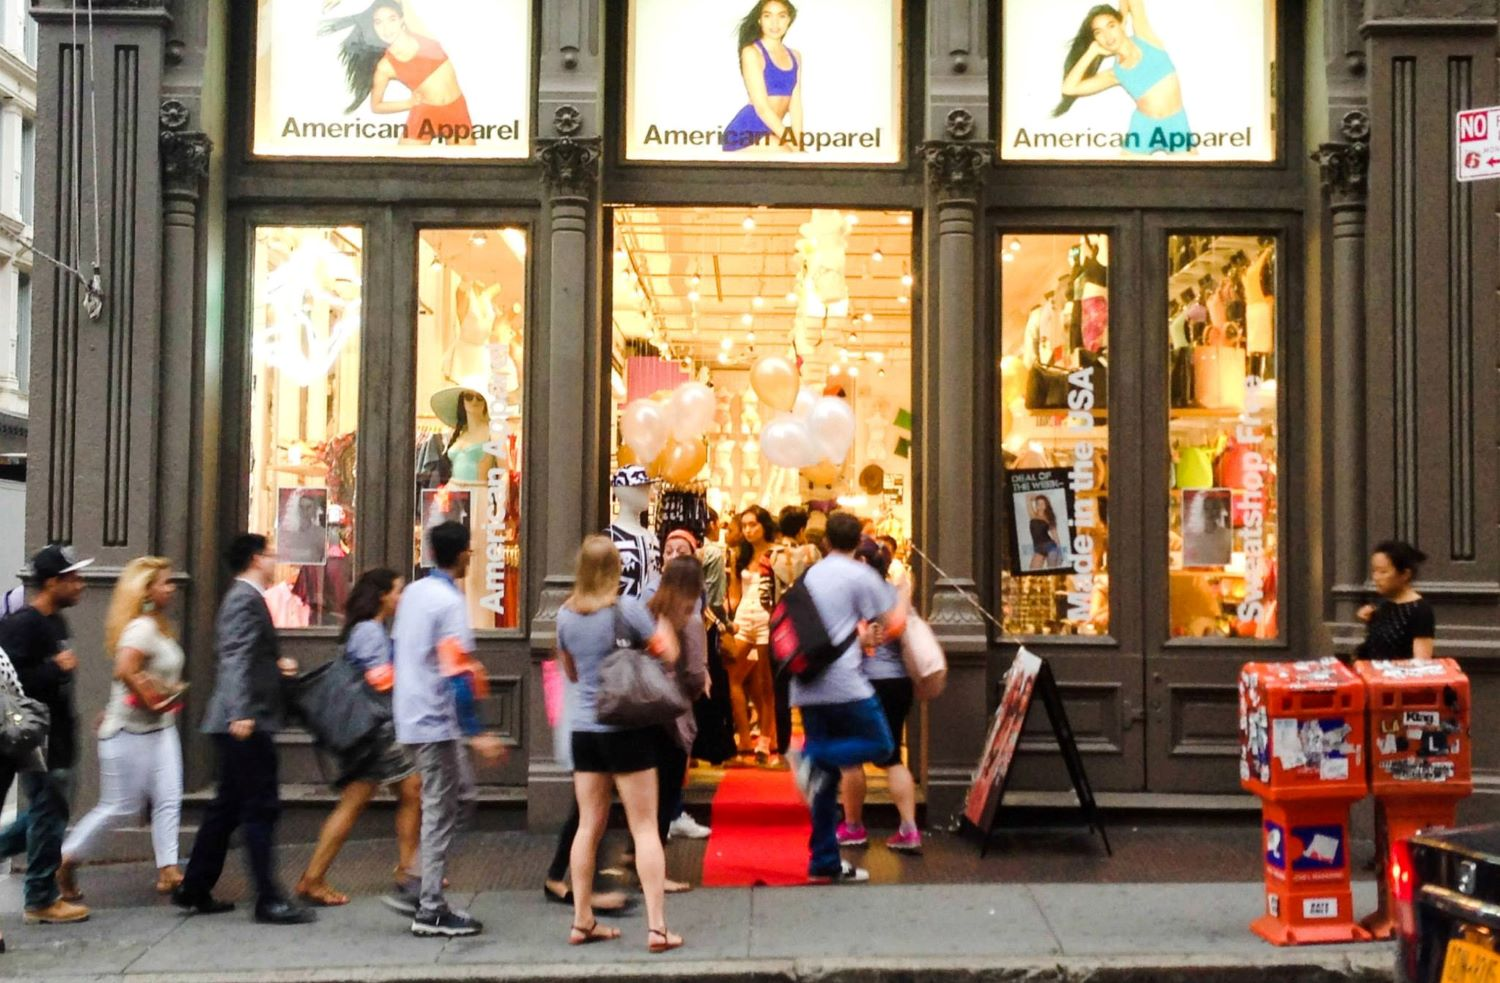 Shoppers visit American Apparel in NY